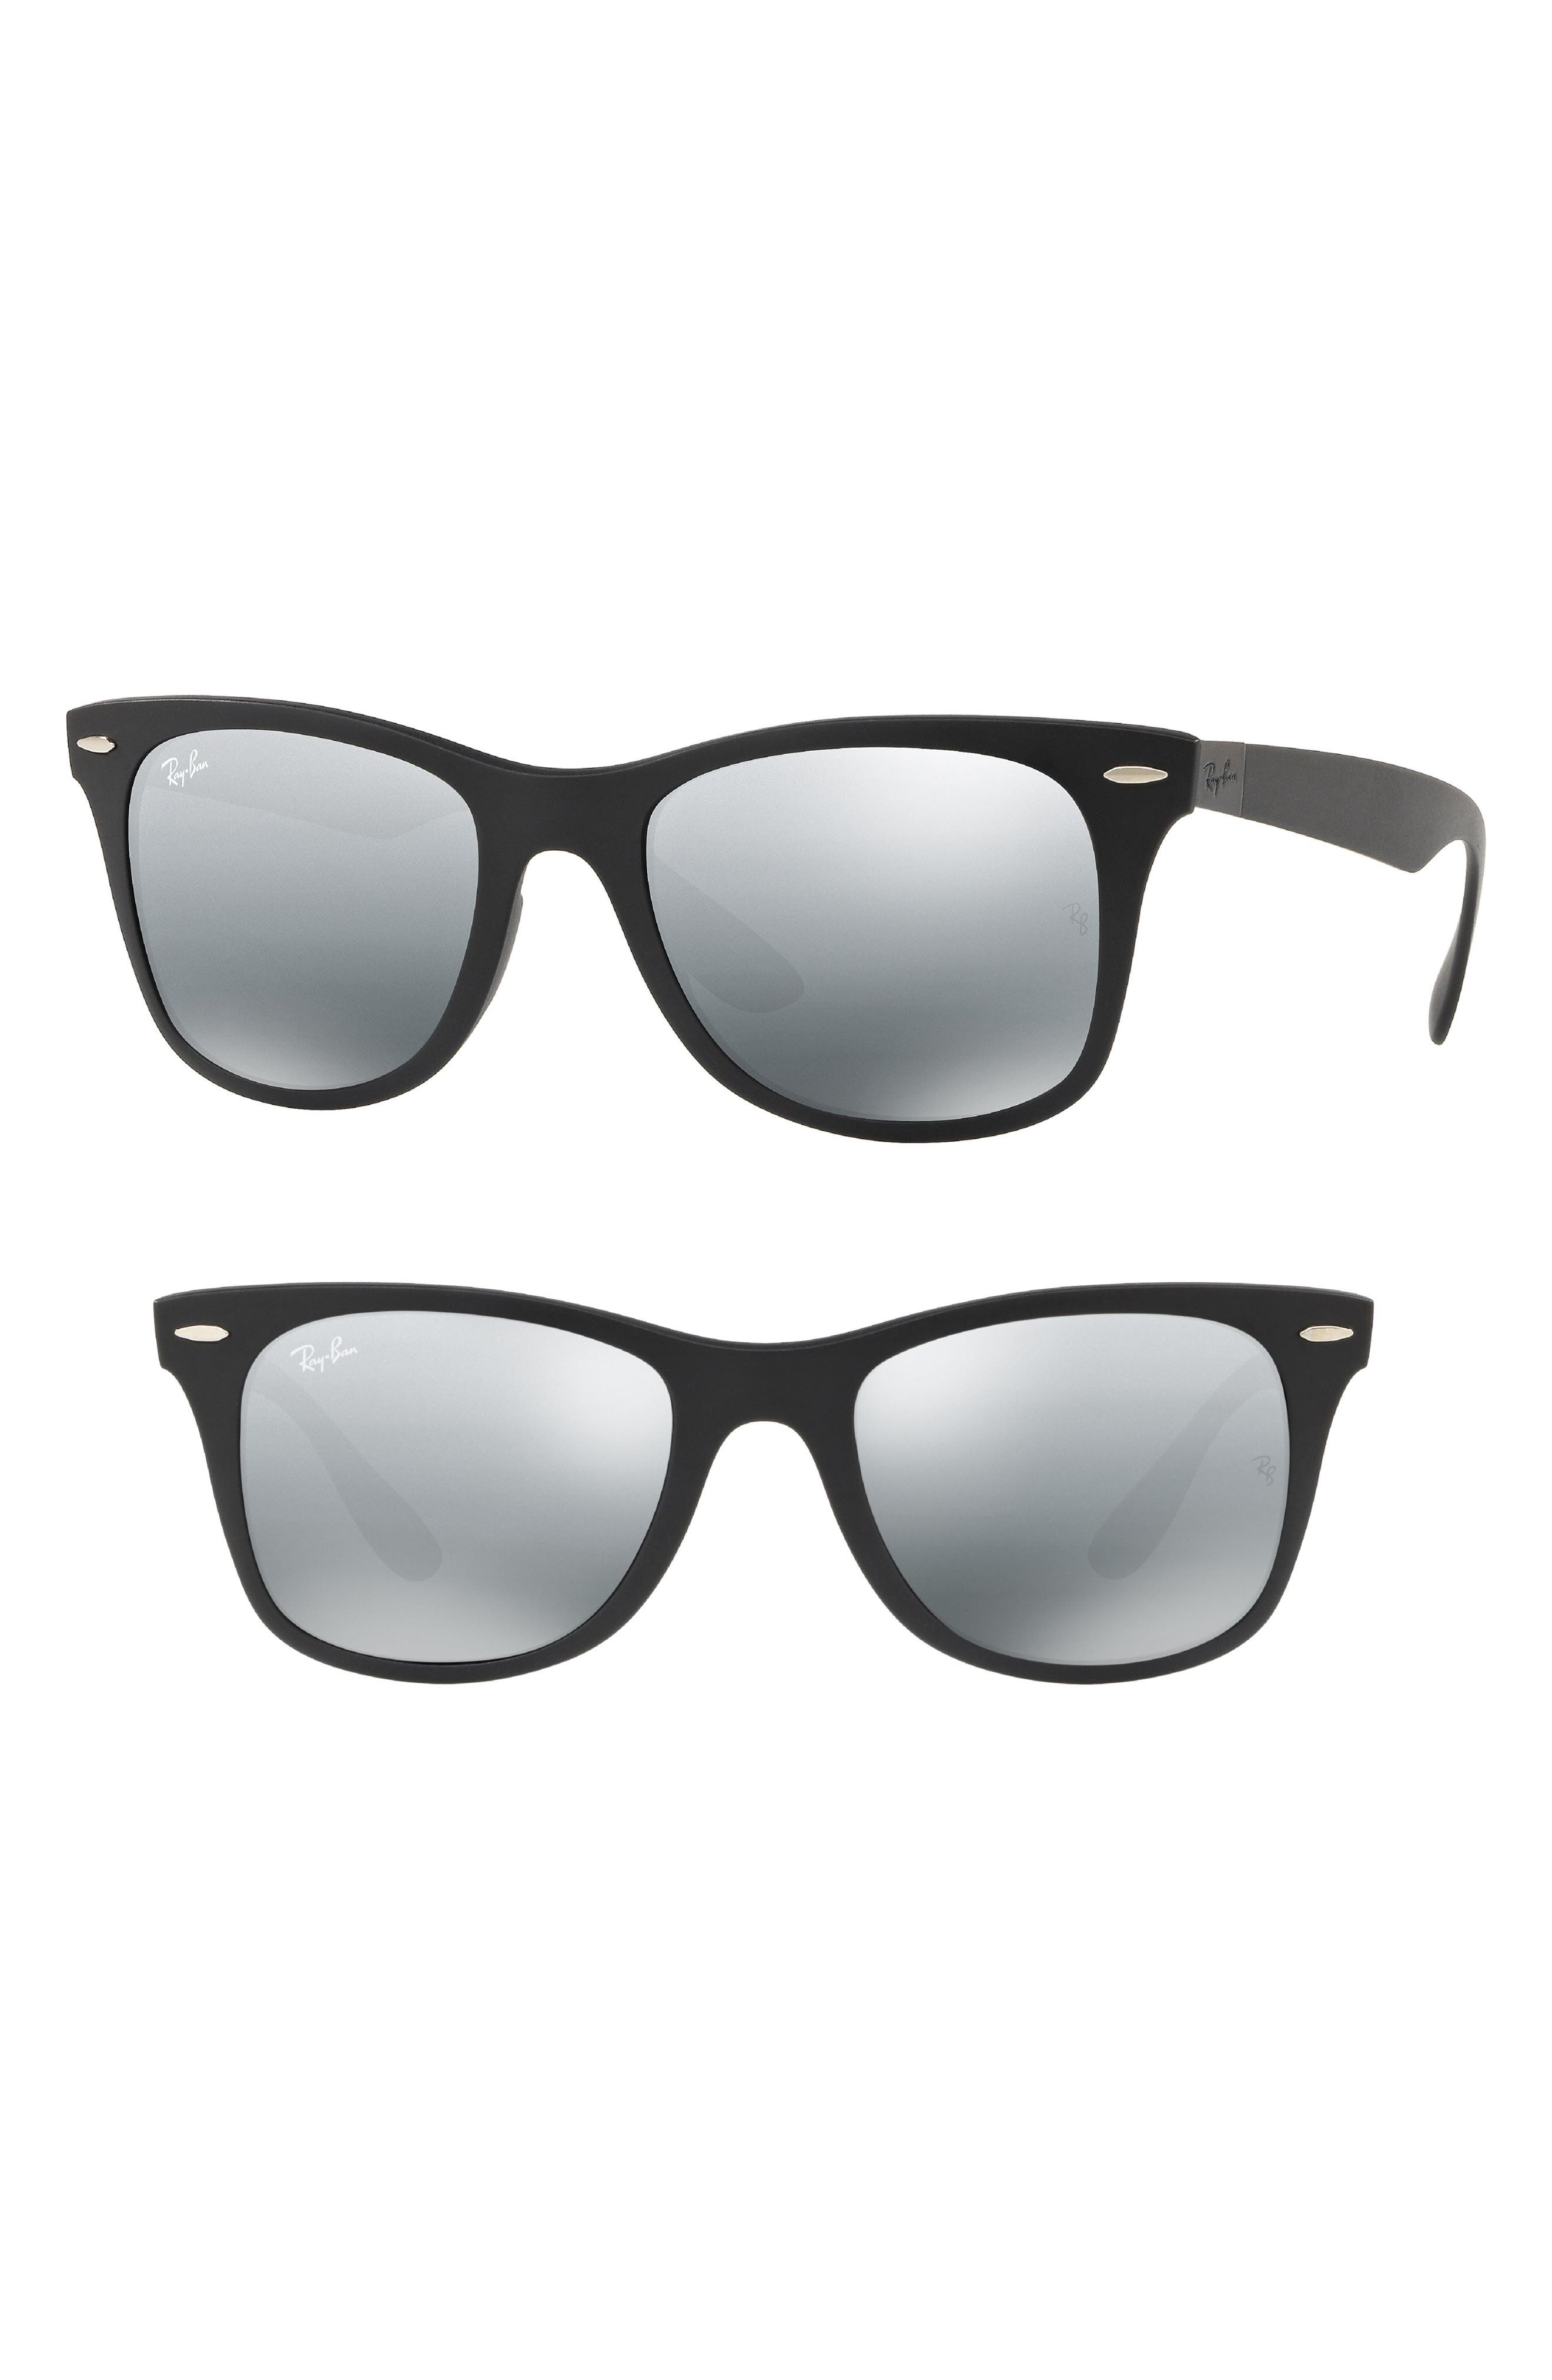 Tech Wayfarer Liteforce 52mm Sunglasses,                         Main,                         color, Matte Black